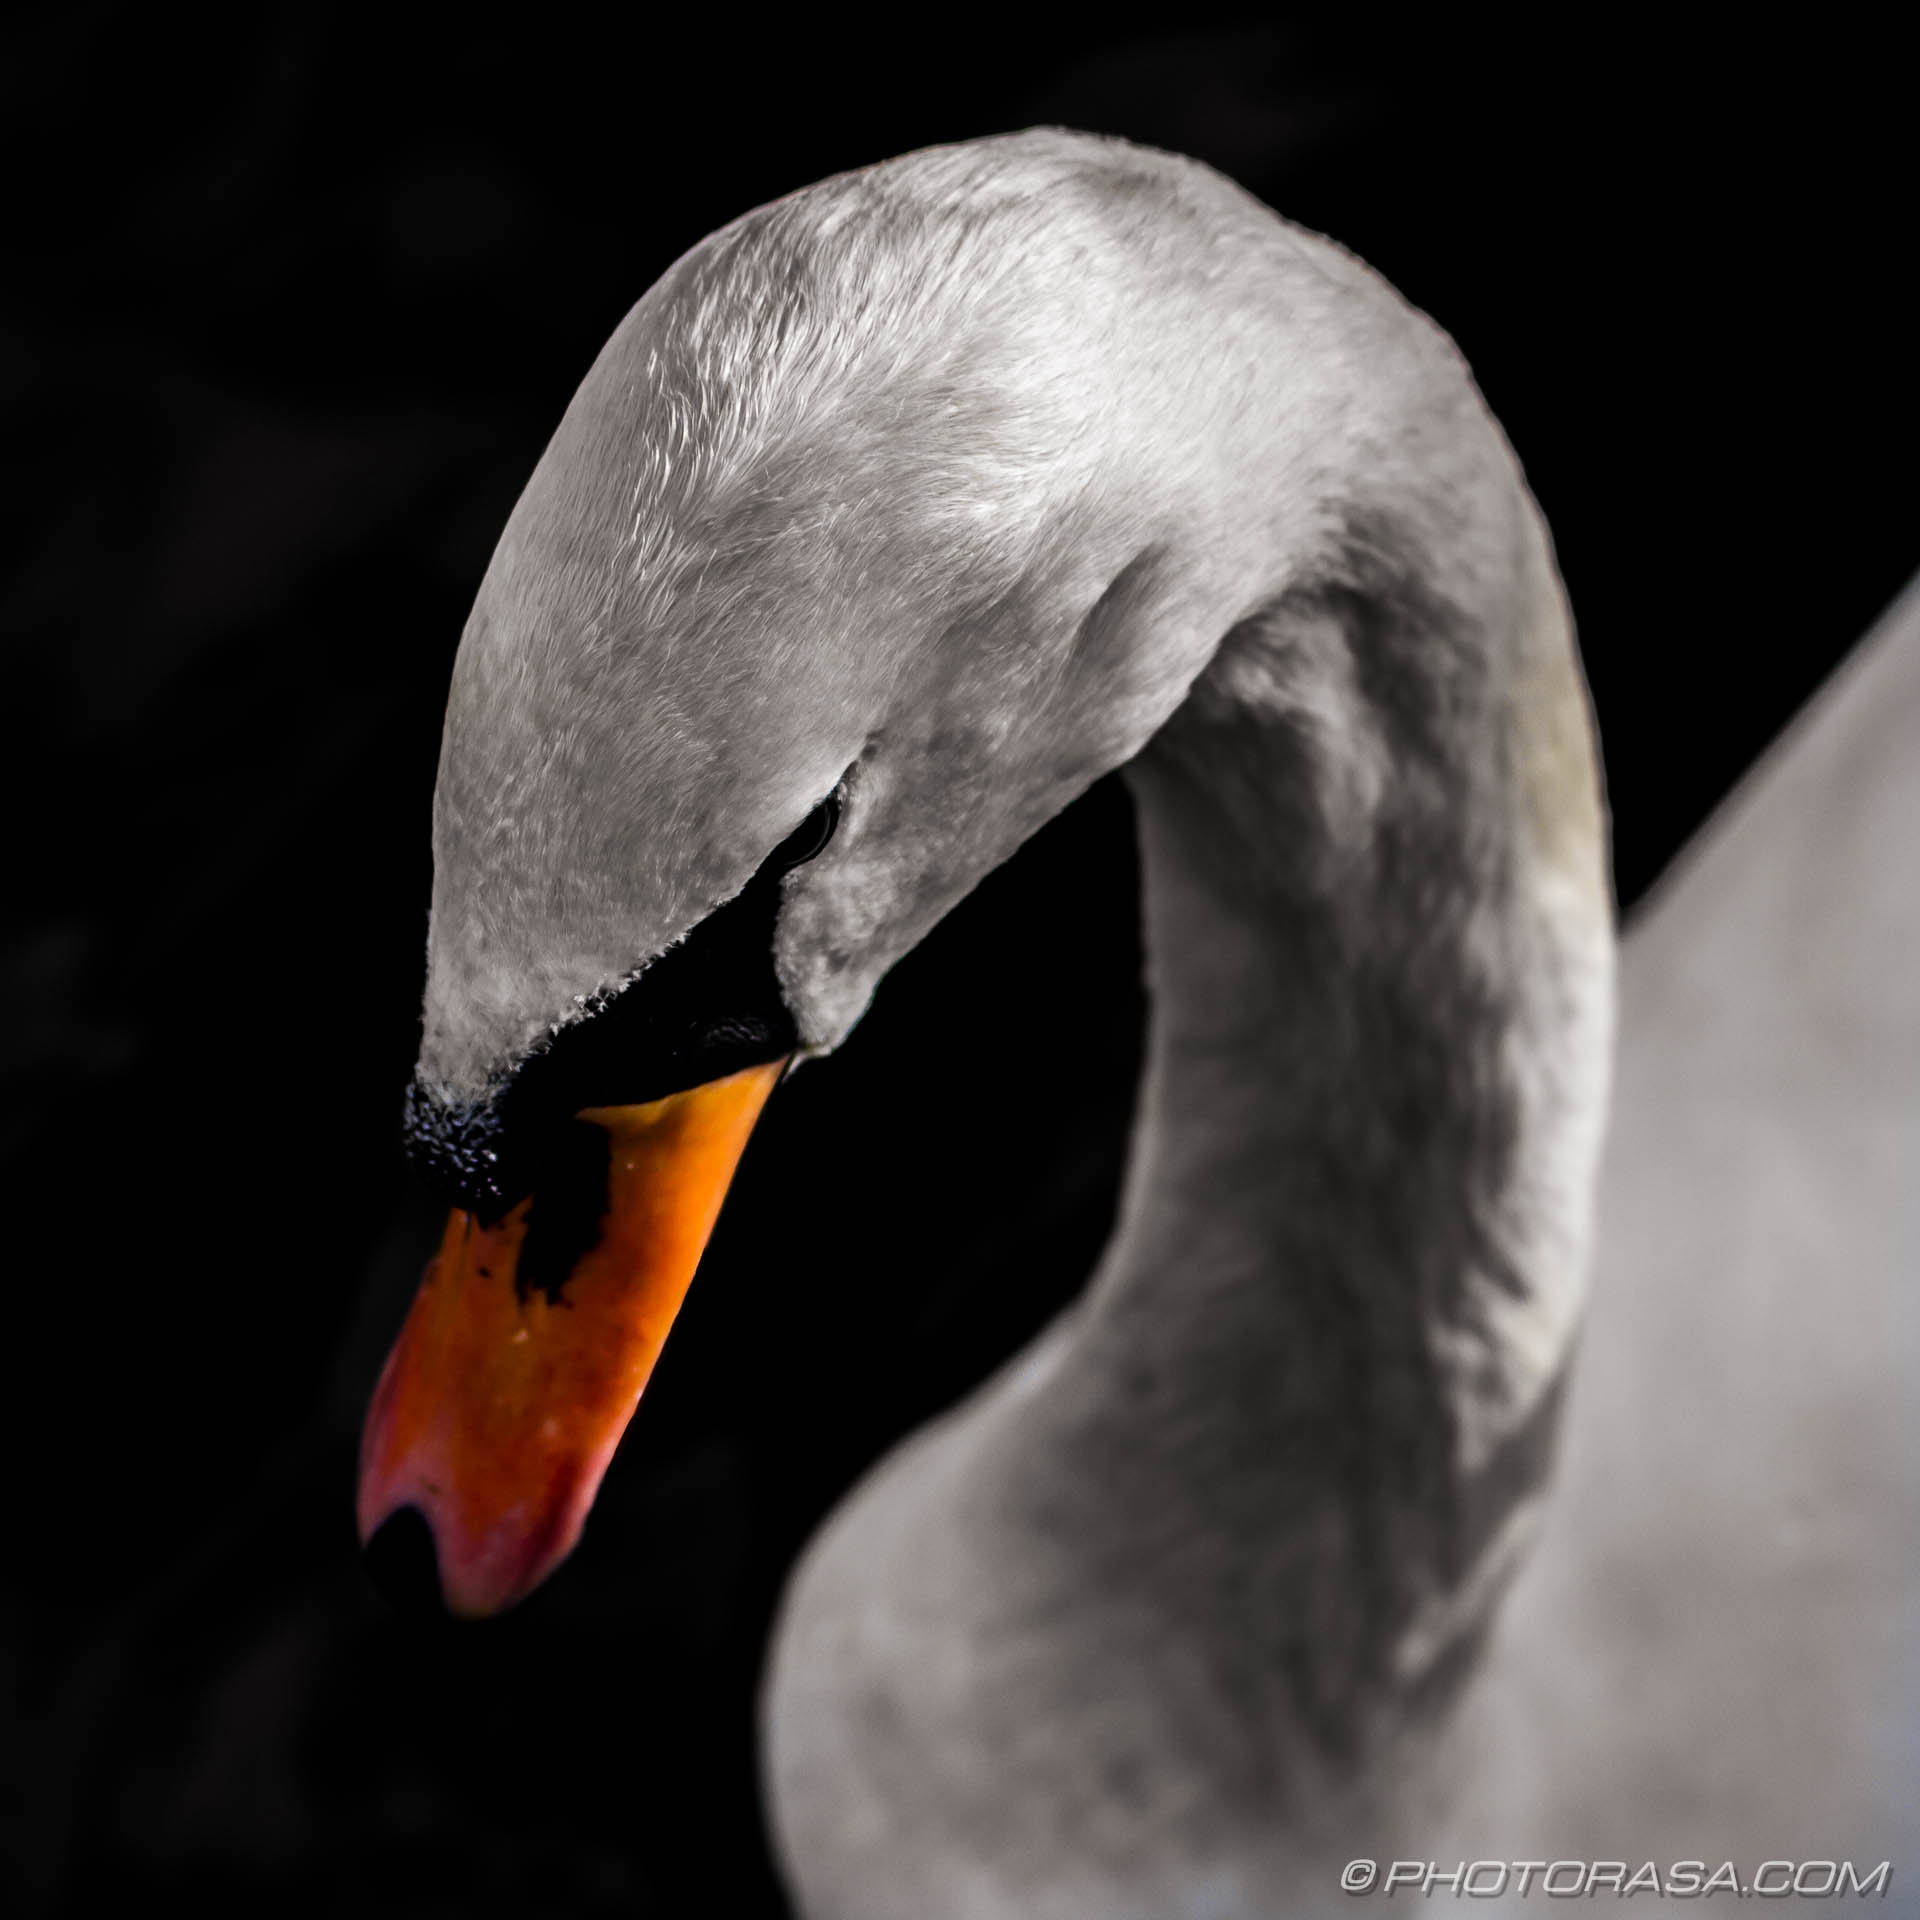 https://photorasa.com/art-swans/swan-head-from-above/